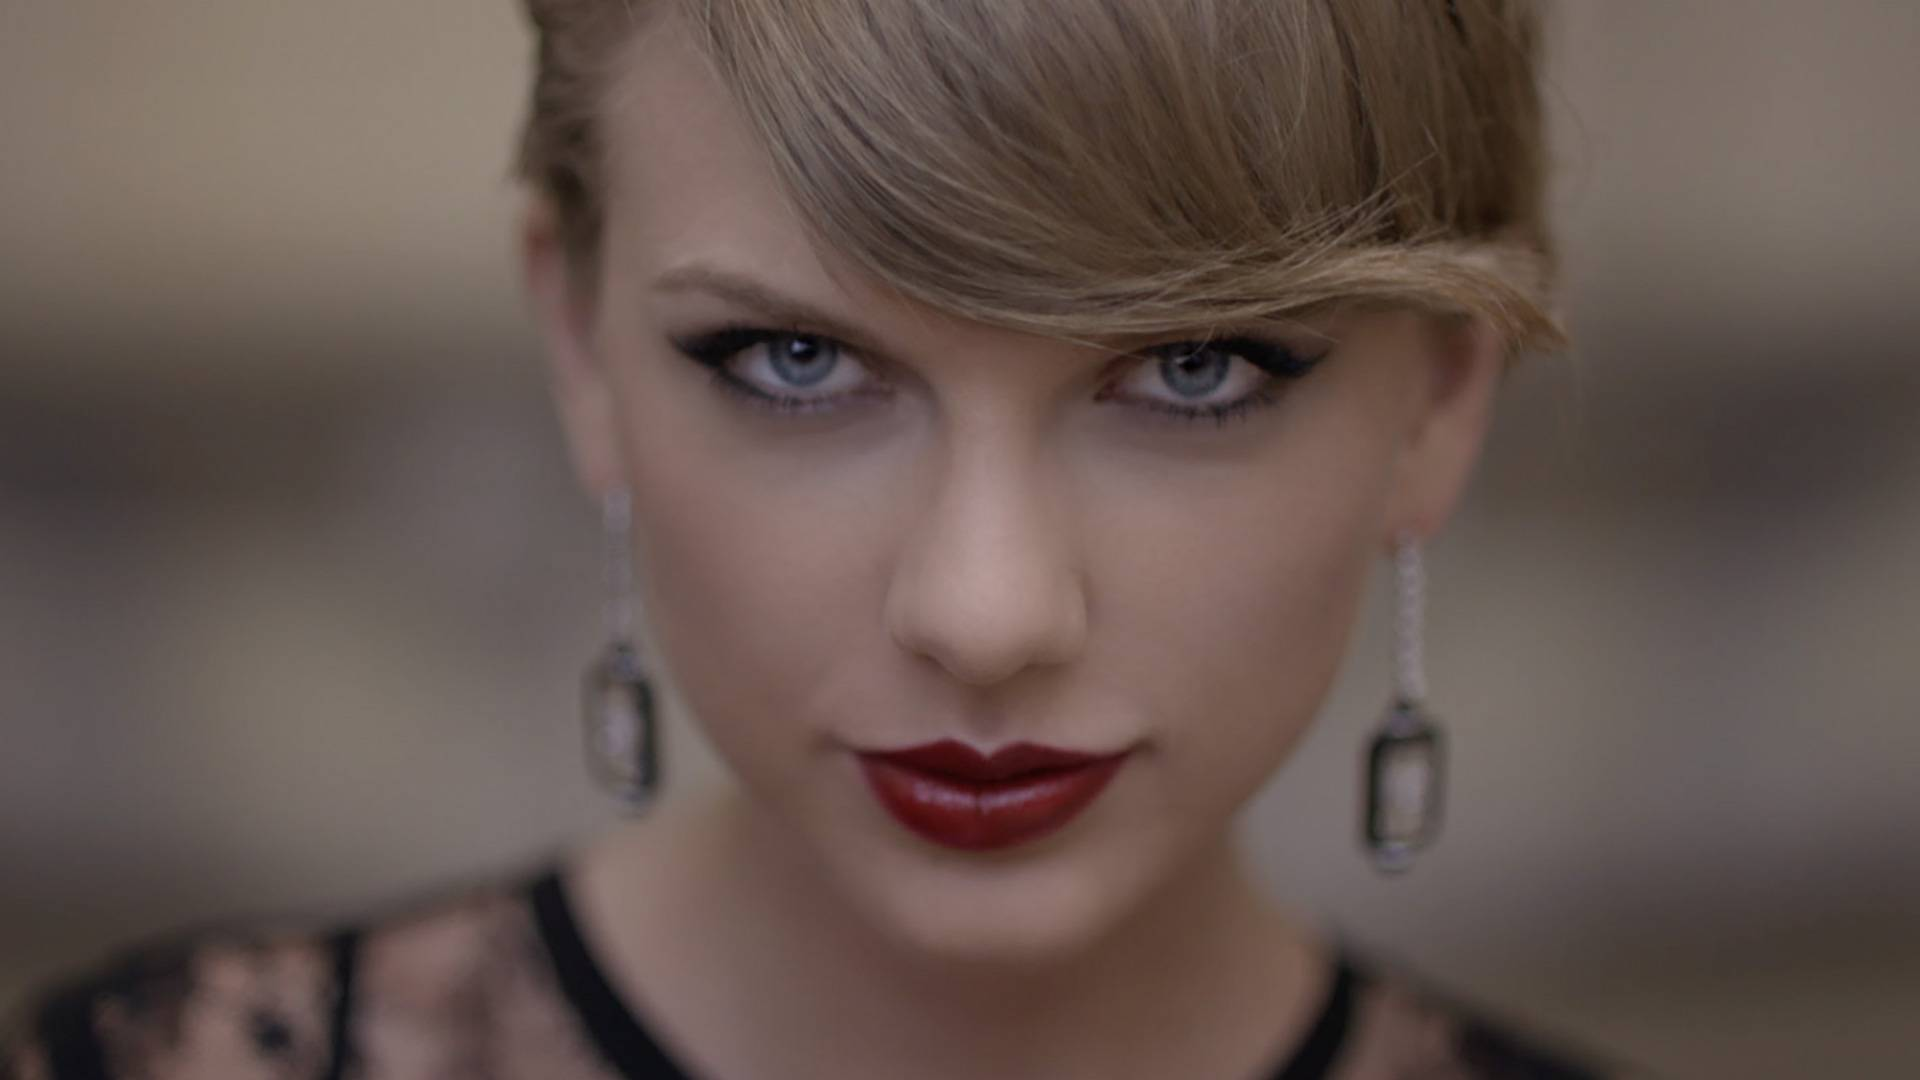 American Express Unstaged Taylor Swift Experience Radicalmedia